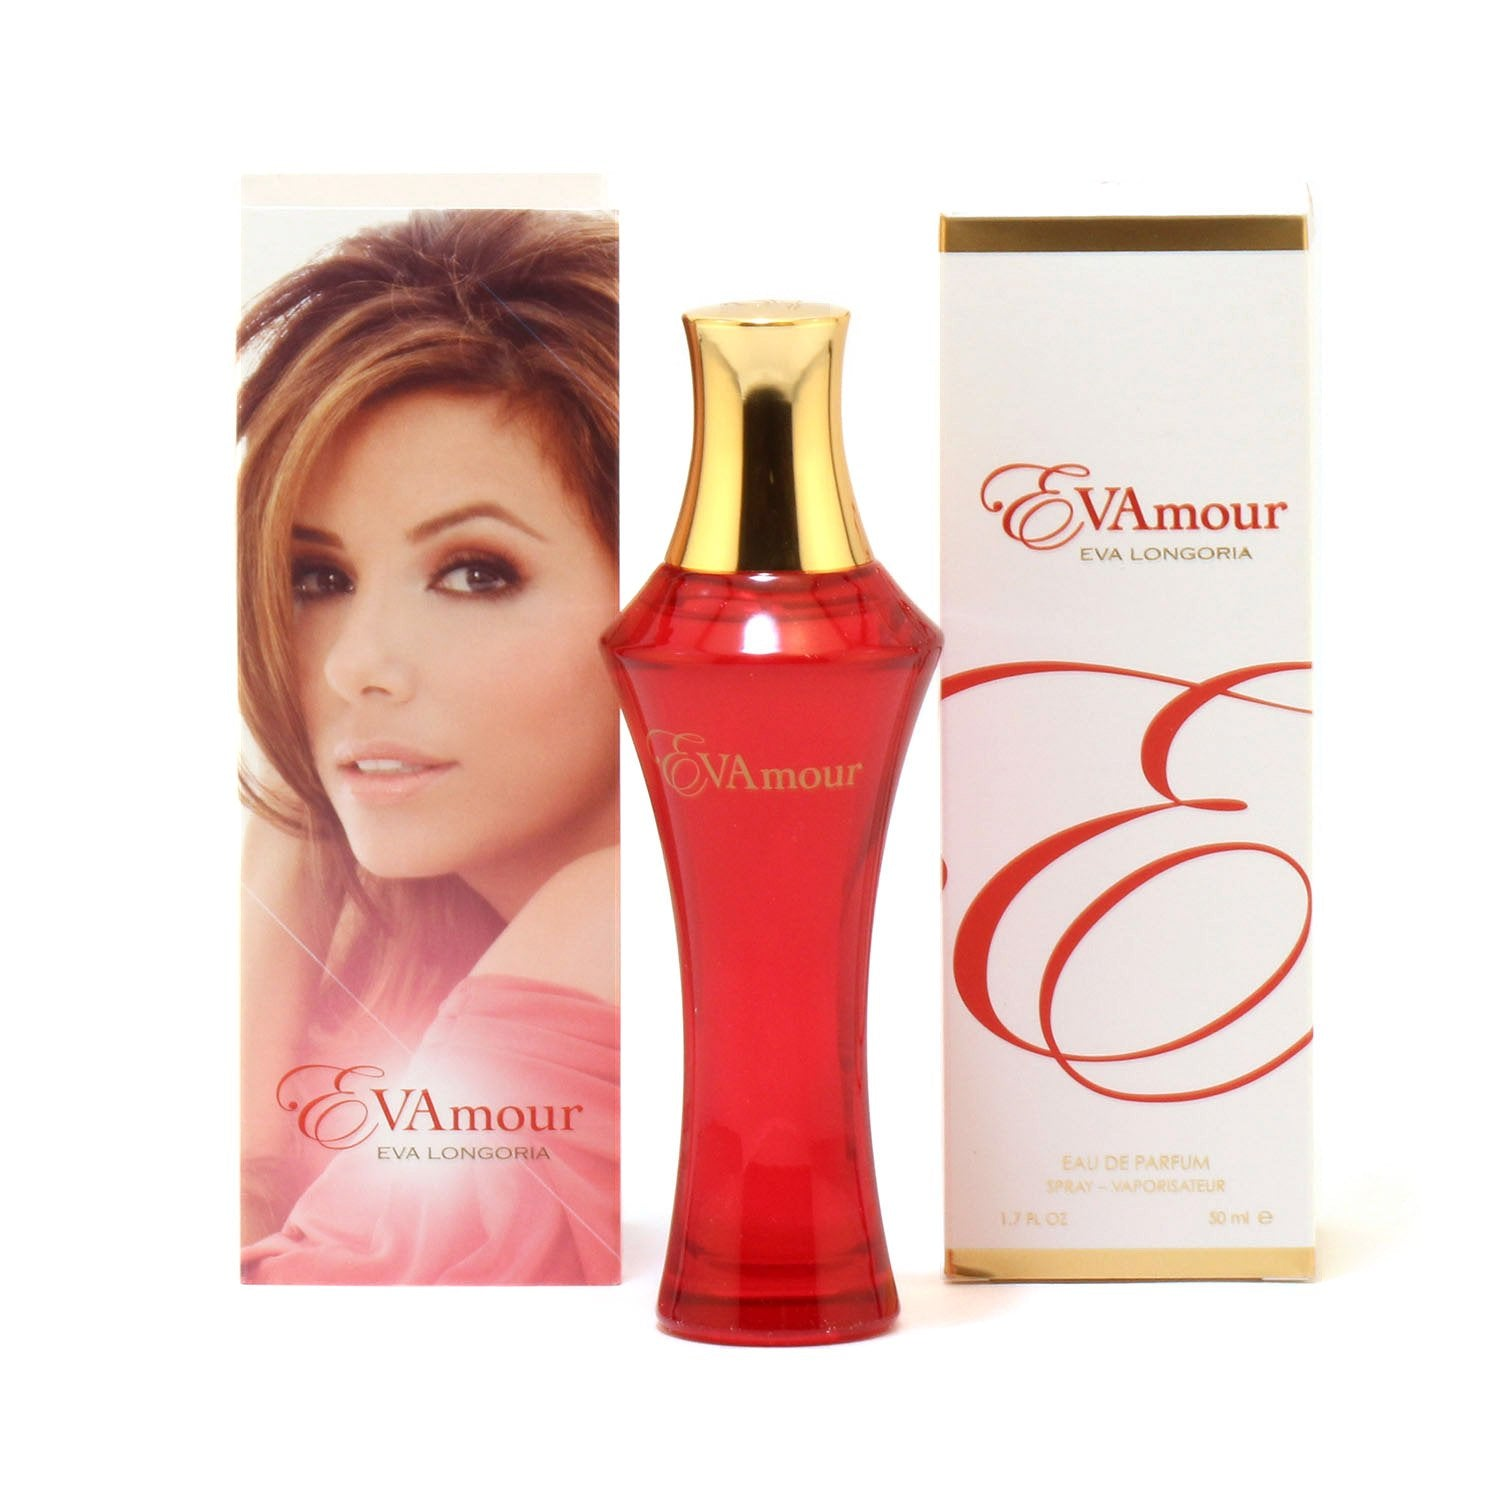 Perfume - EVAMOUR FOR WOMEN BY EVA LONGORIA - EAU DE PARFUM SPRAY, 1.7 OZ